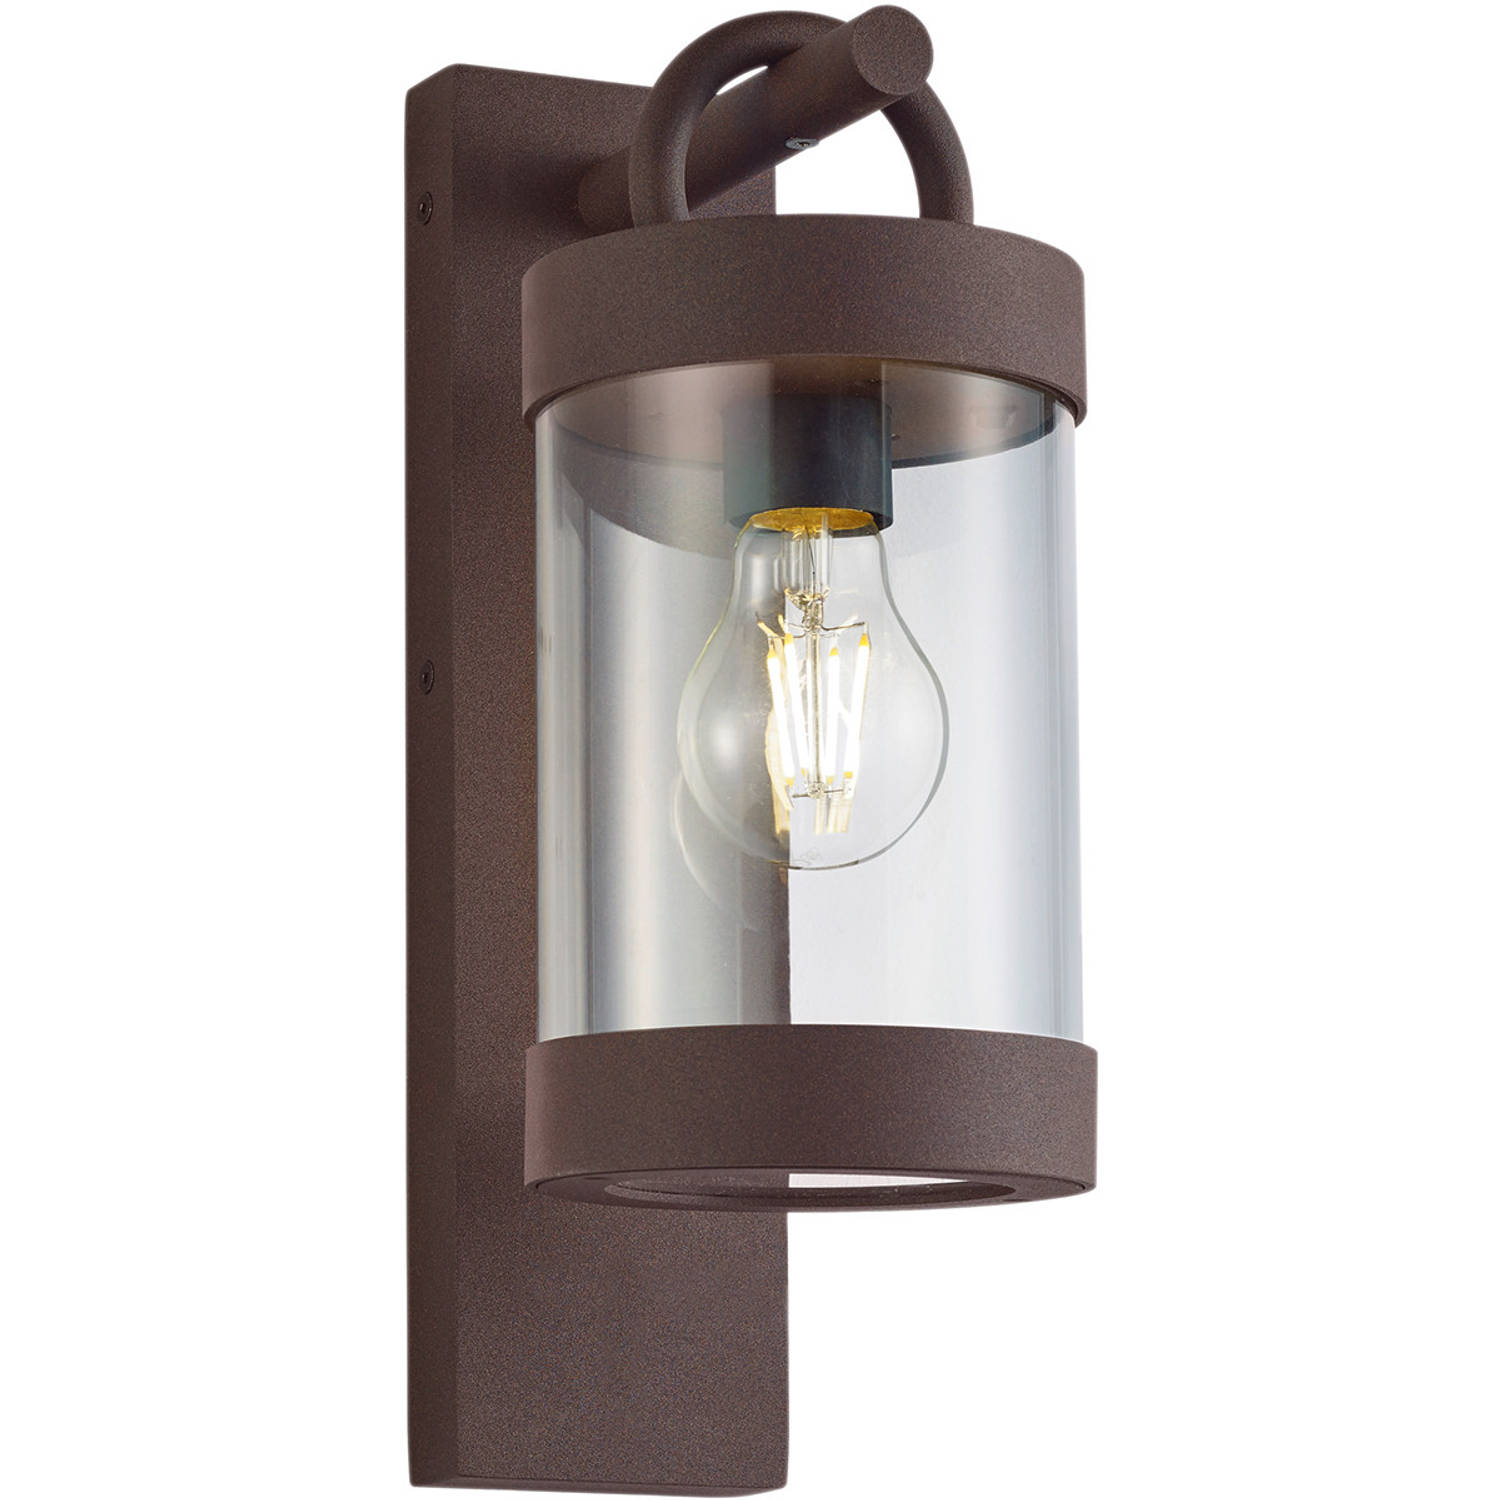 Led Tuinverlichting - Tuinlamp - Trion Semby - Wand - Lichtsensor - E27 Fitting - Roestkleur - Alumi